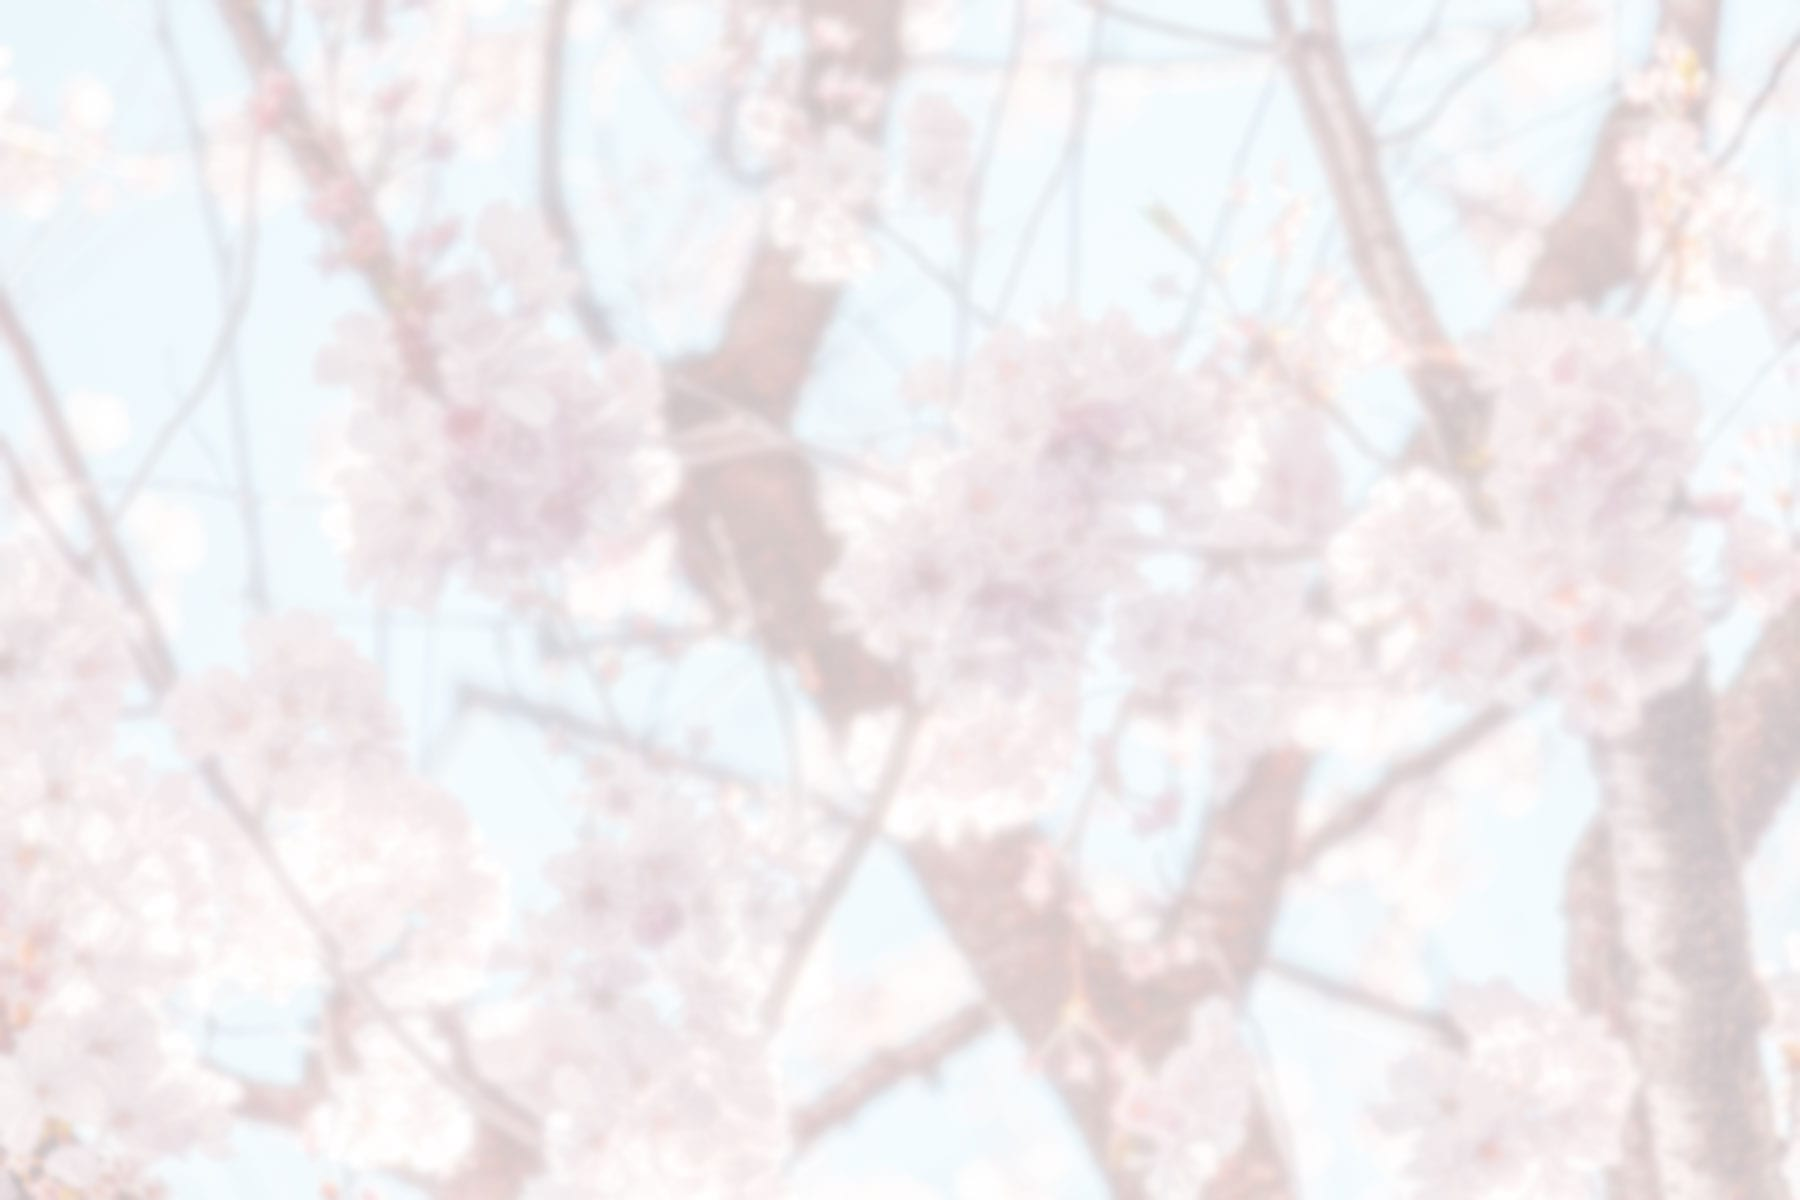 Blurred pink blossoms